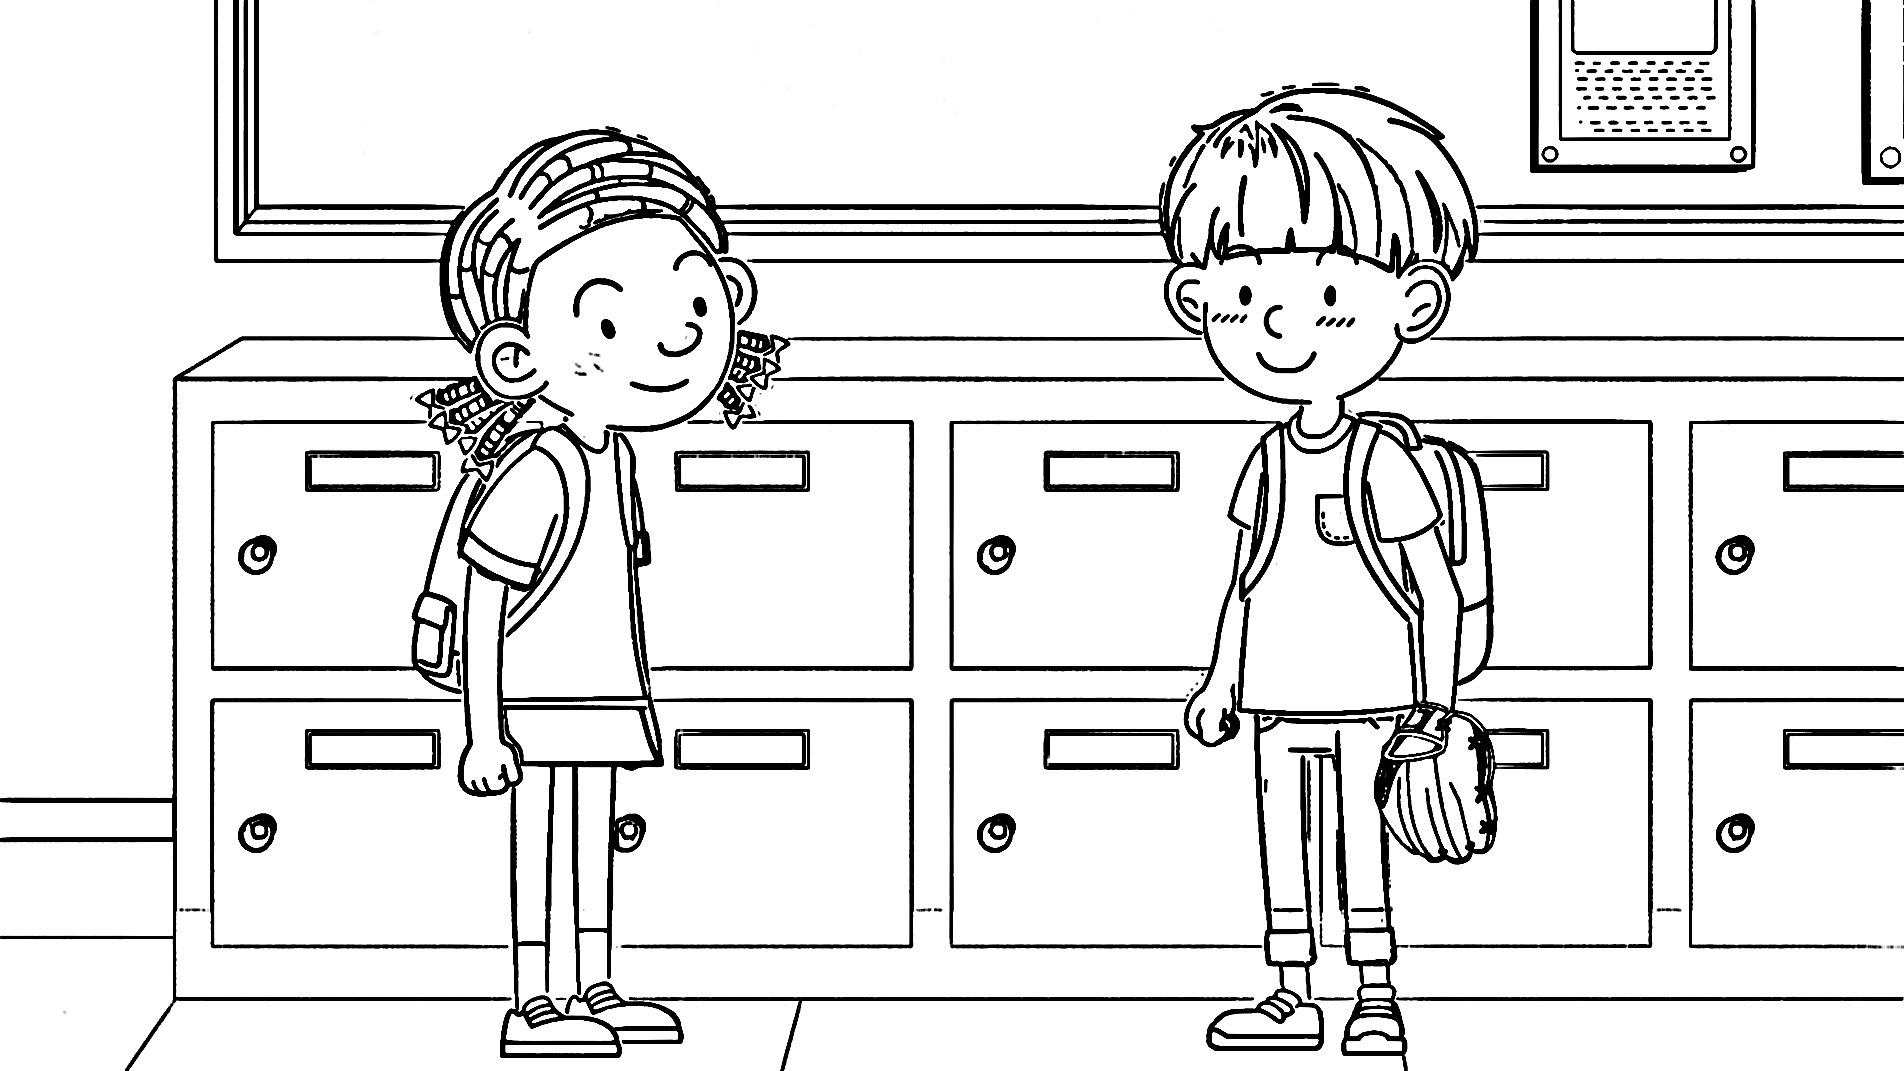 Speaking Cartoon Kids Coloring Page 56